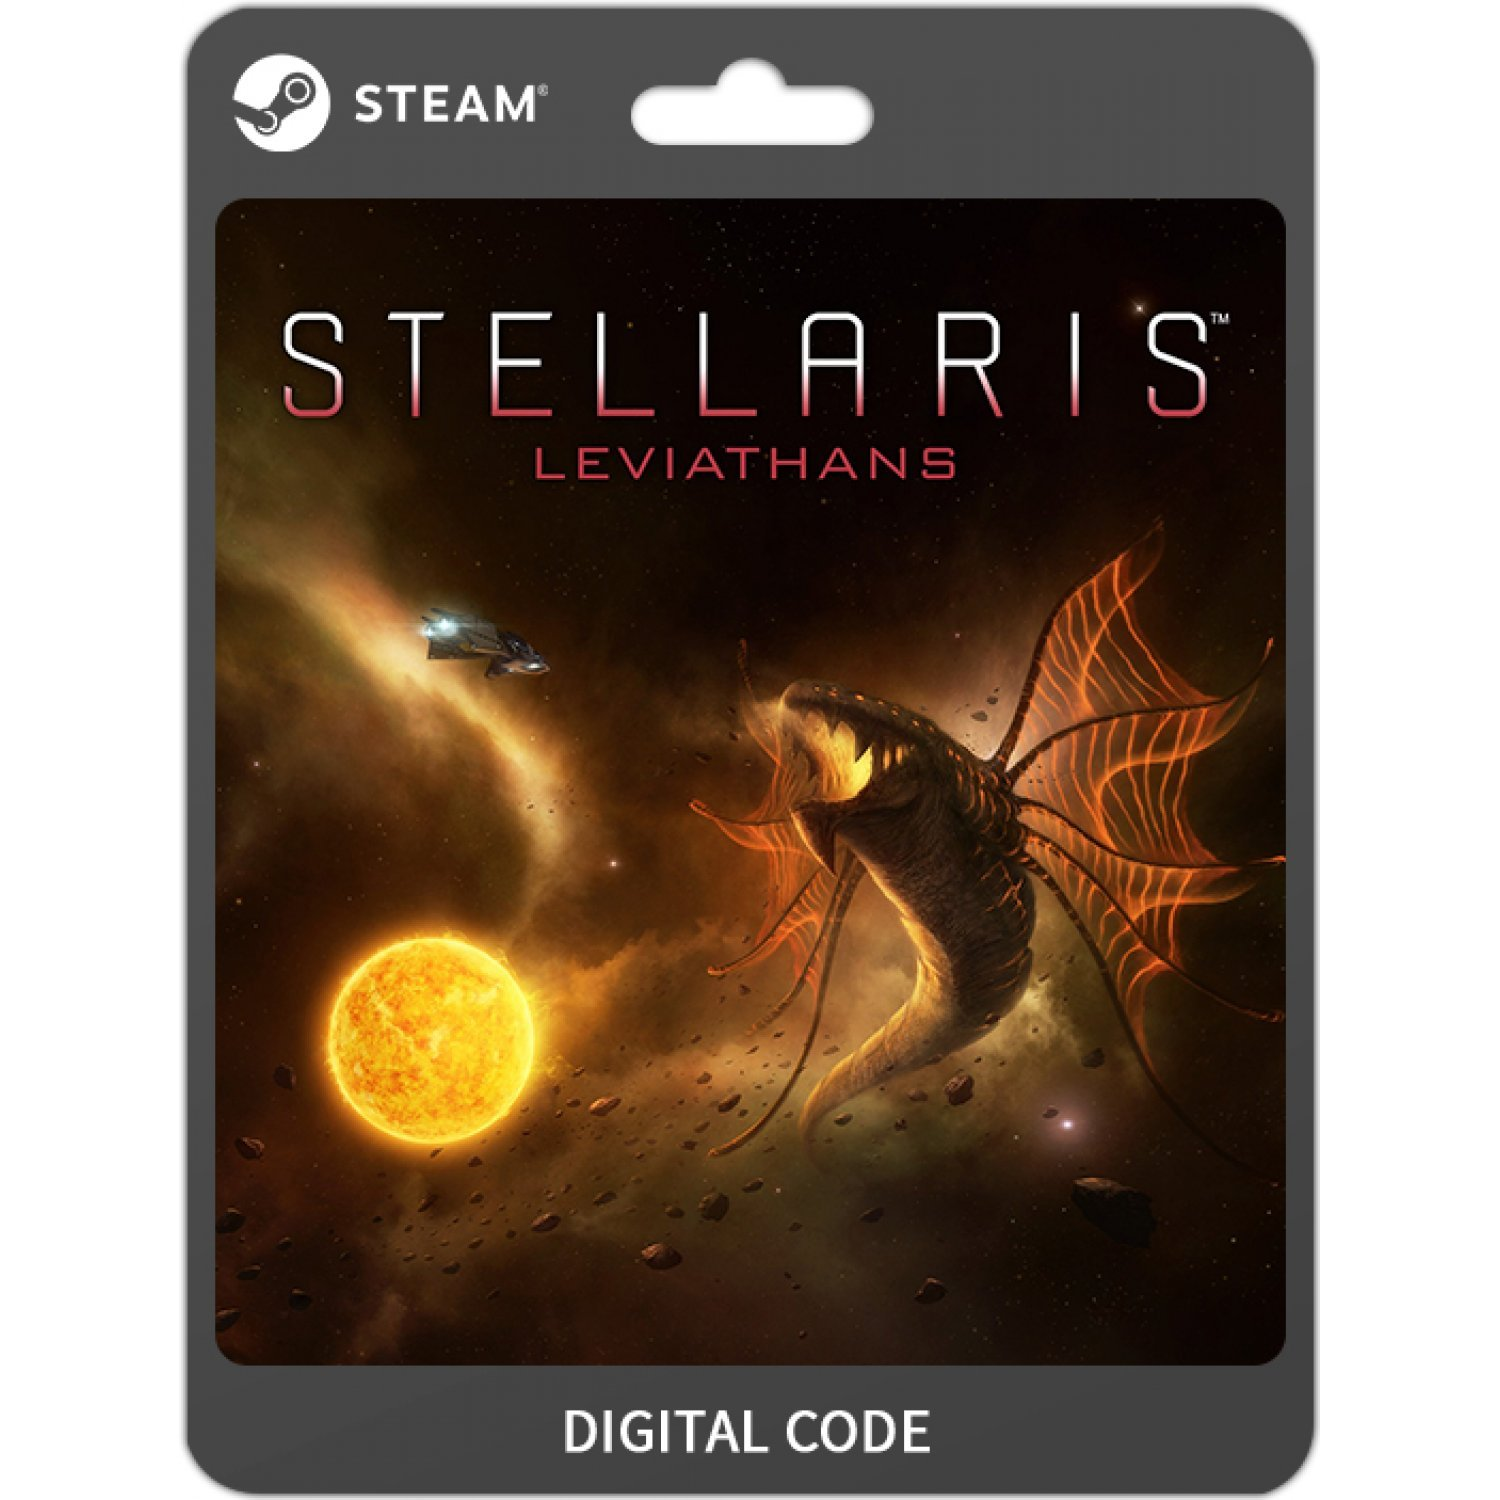 stellaris leviathans story dlc steam steam digital